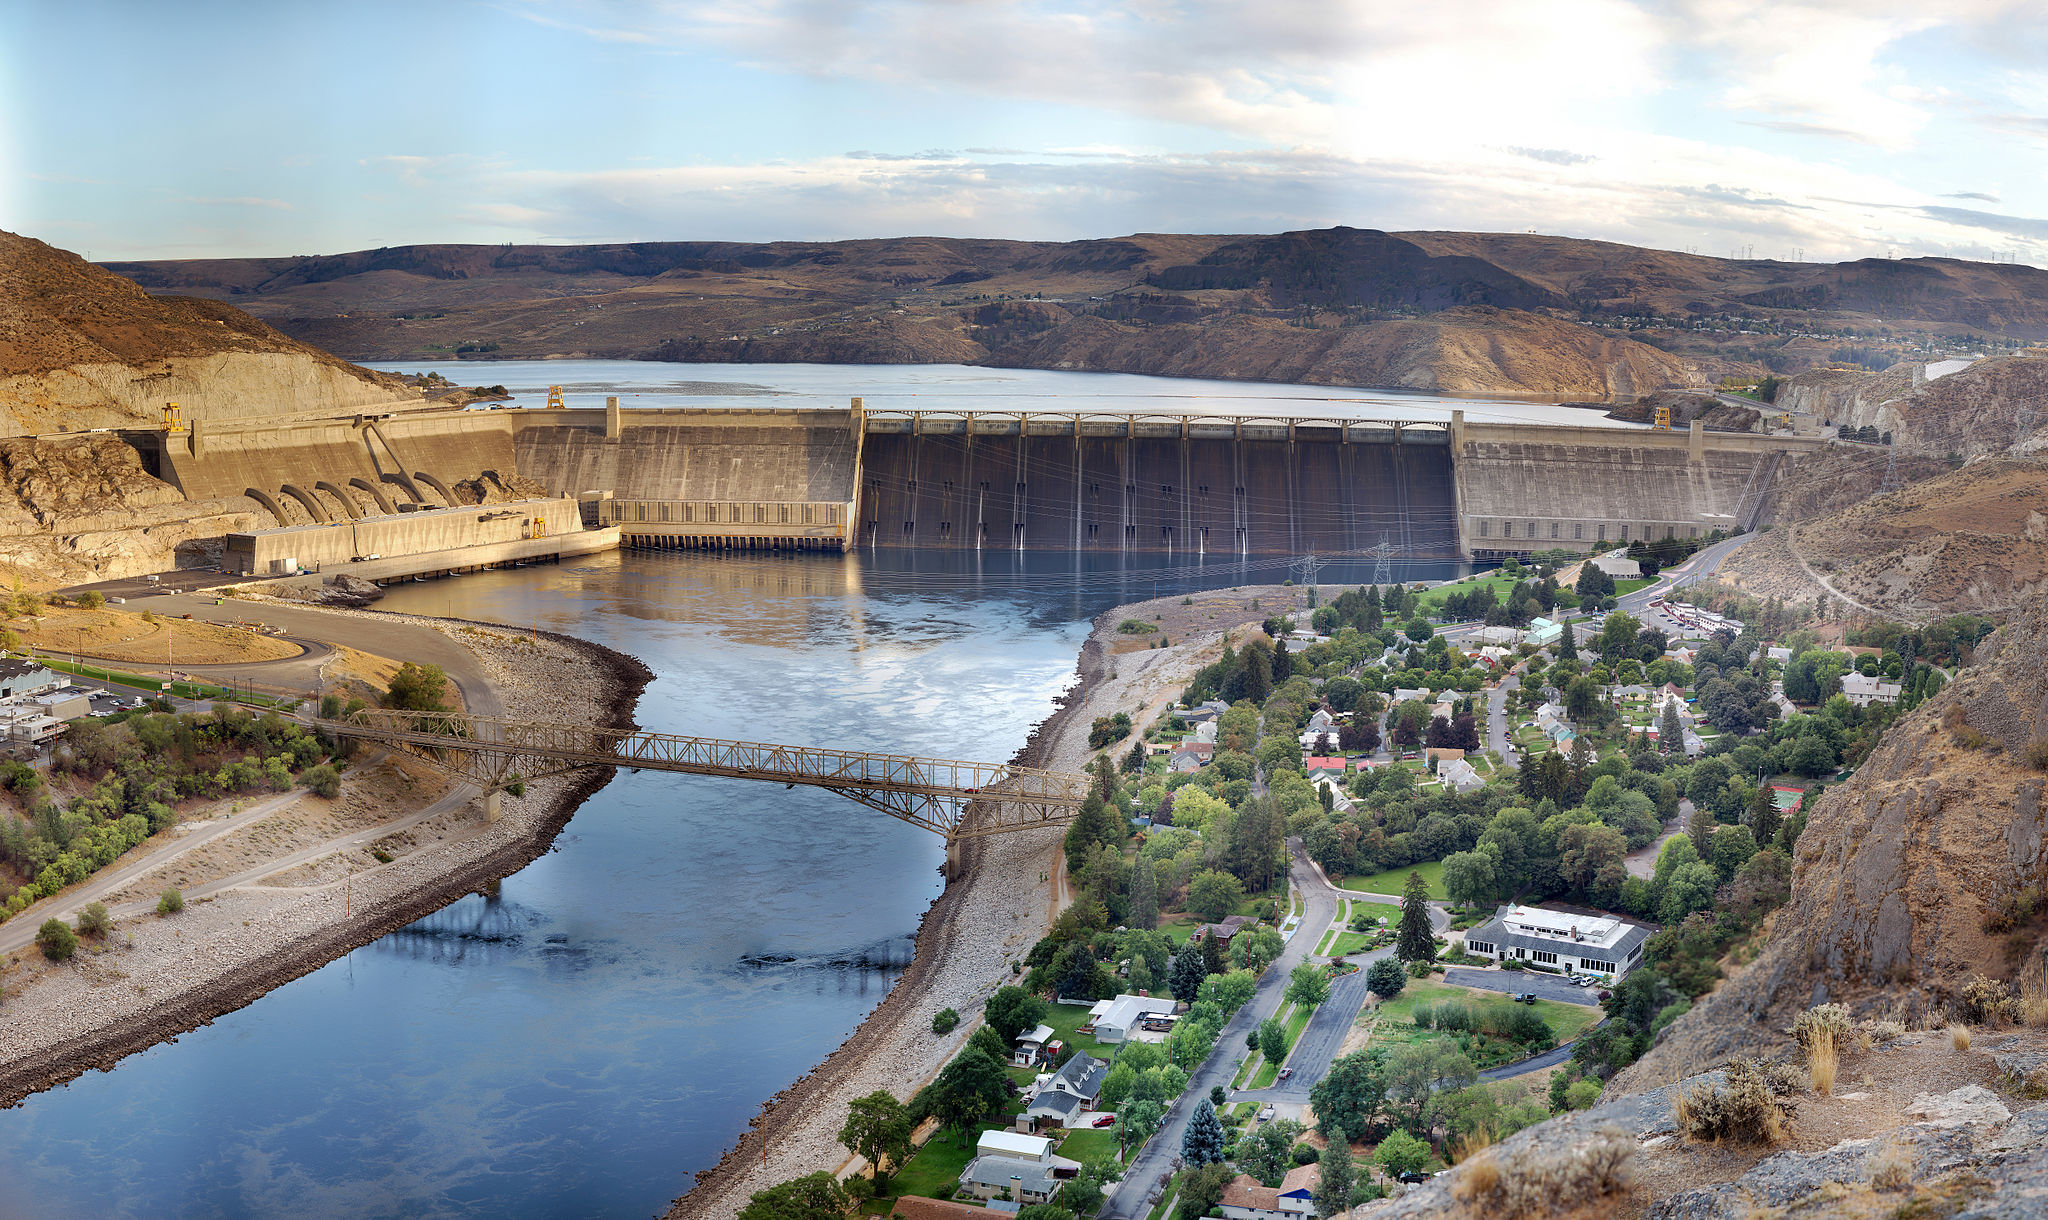 Adding ecosystem function as a pillar of the Columbia River Treaty during renegotiations could help address the environmental harms wrought by Grand Coulee Dam and other dams.